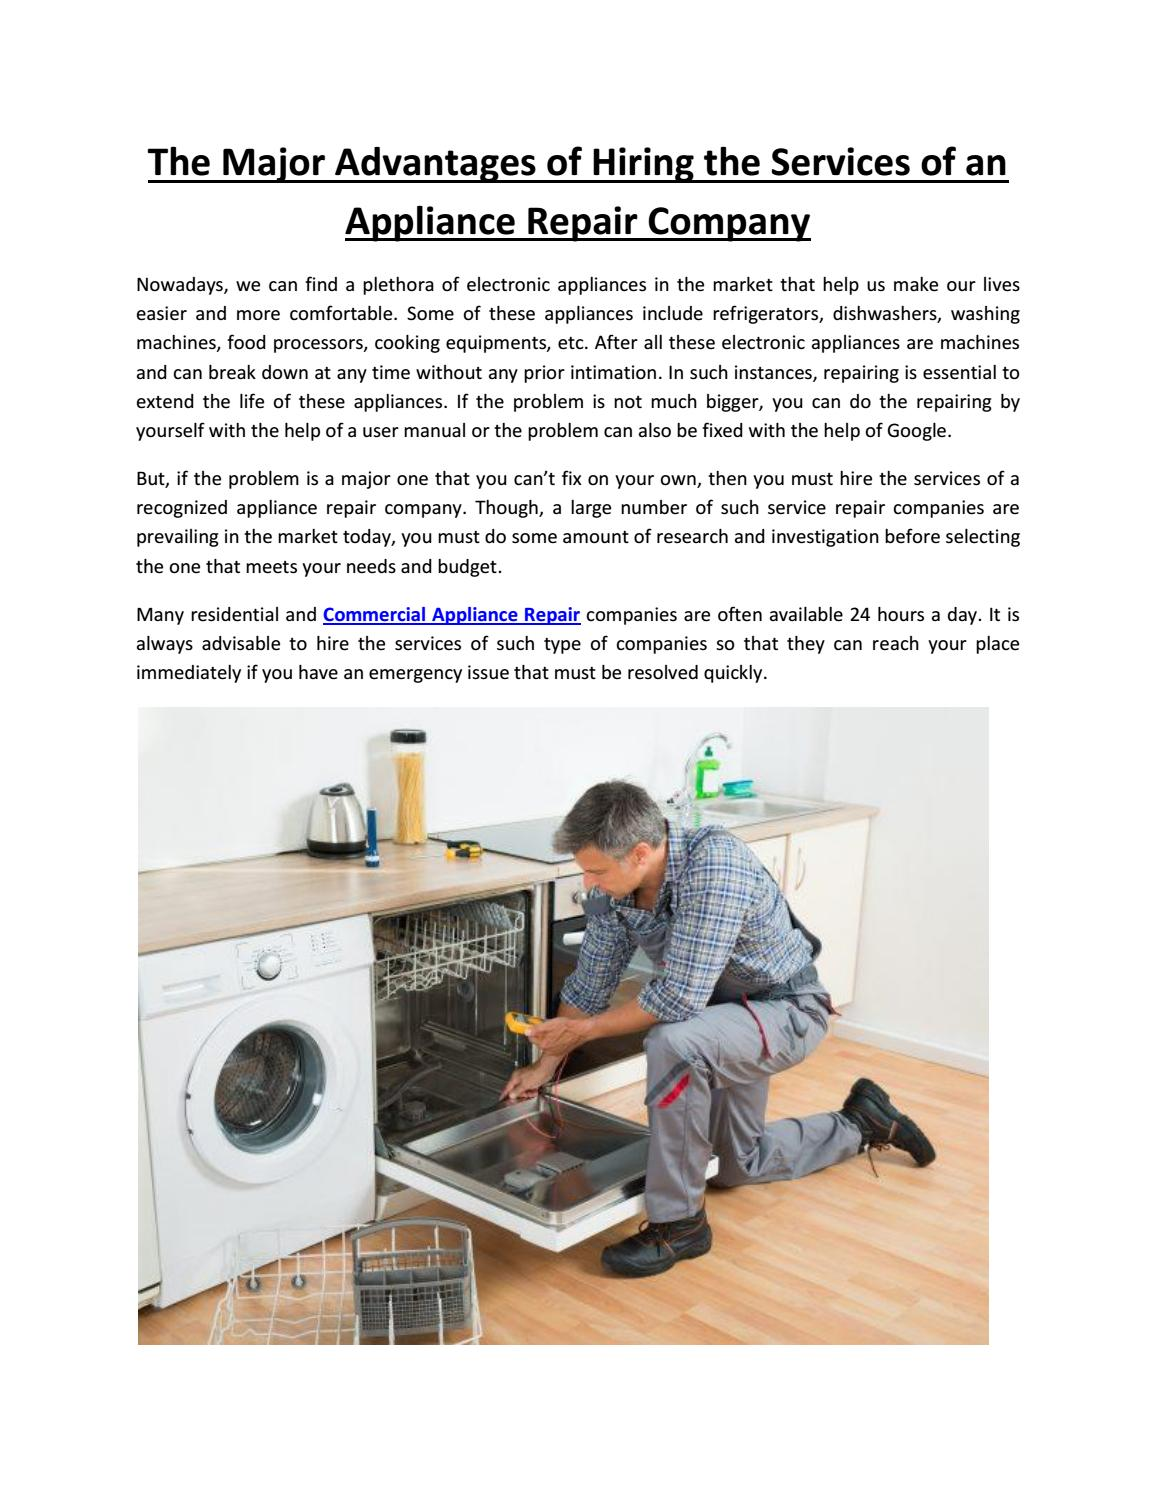 Home Repair Companies The Major Advantages Of Hiring The Services Of An Appliance Repair